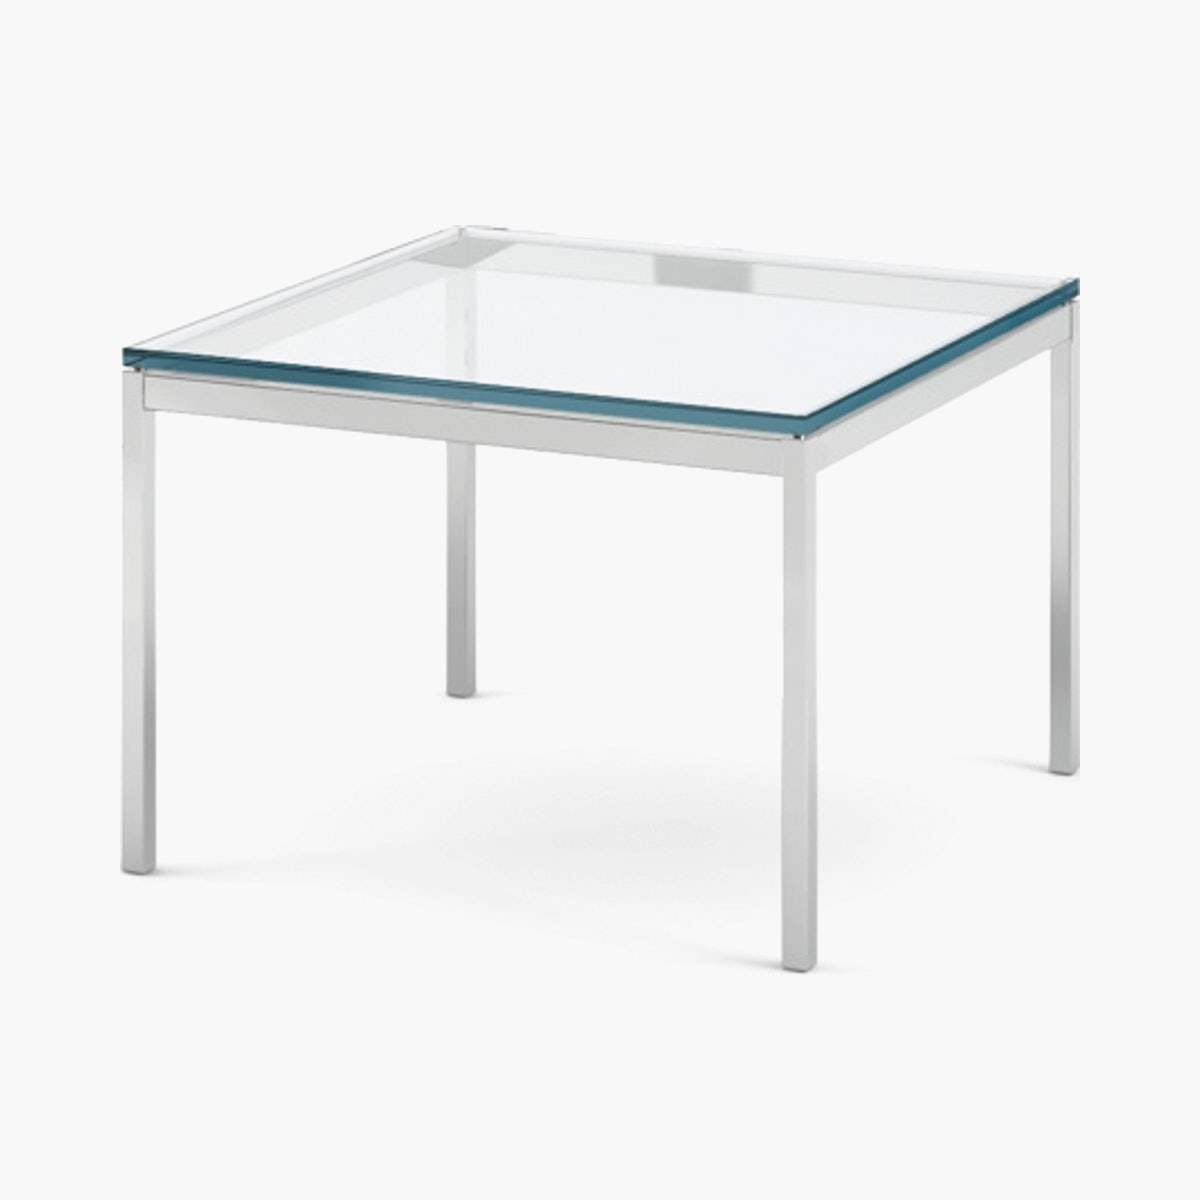 Florence Knoll Square Coffee Table